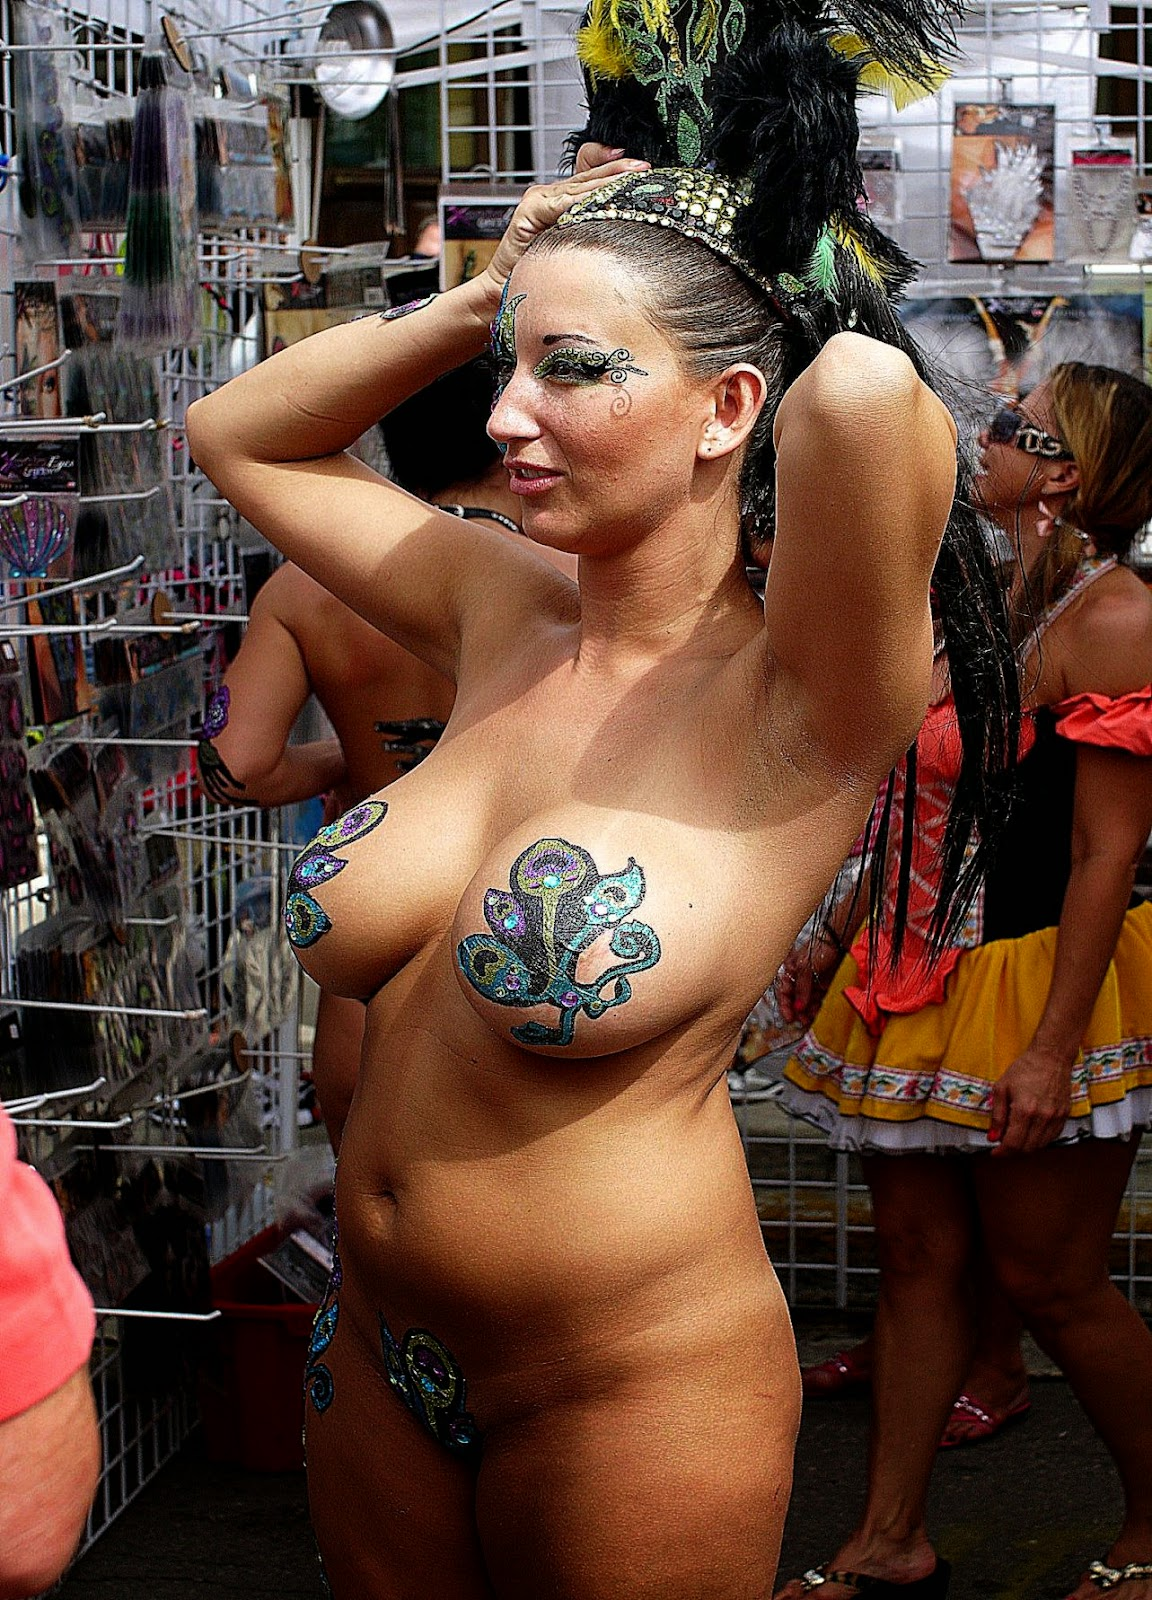 Tattoo sexiest woman ever naked